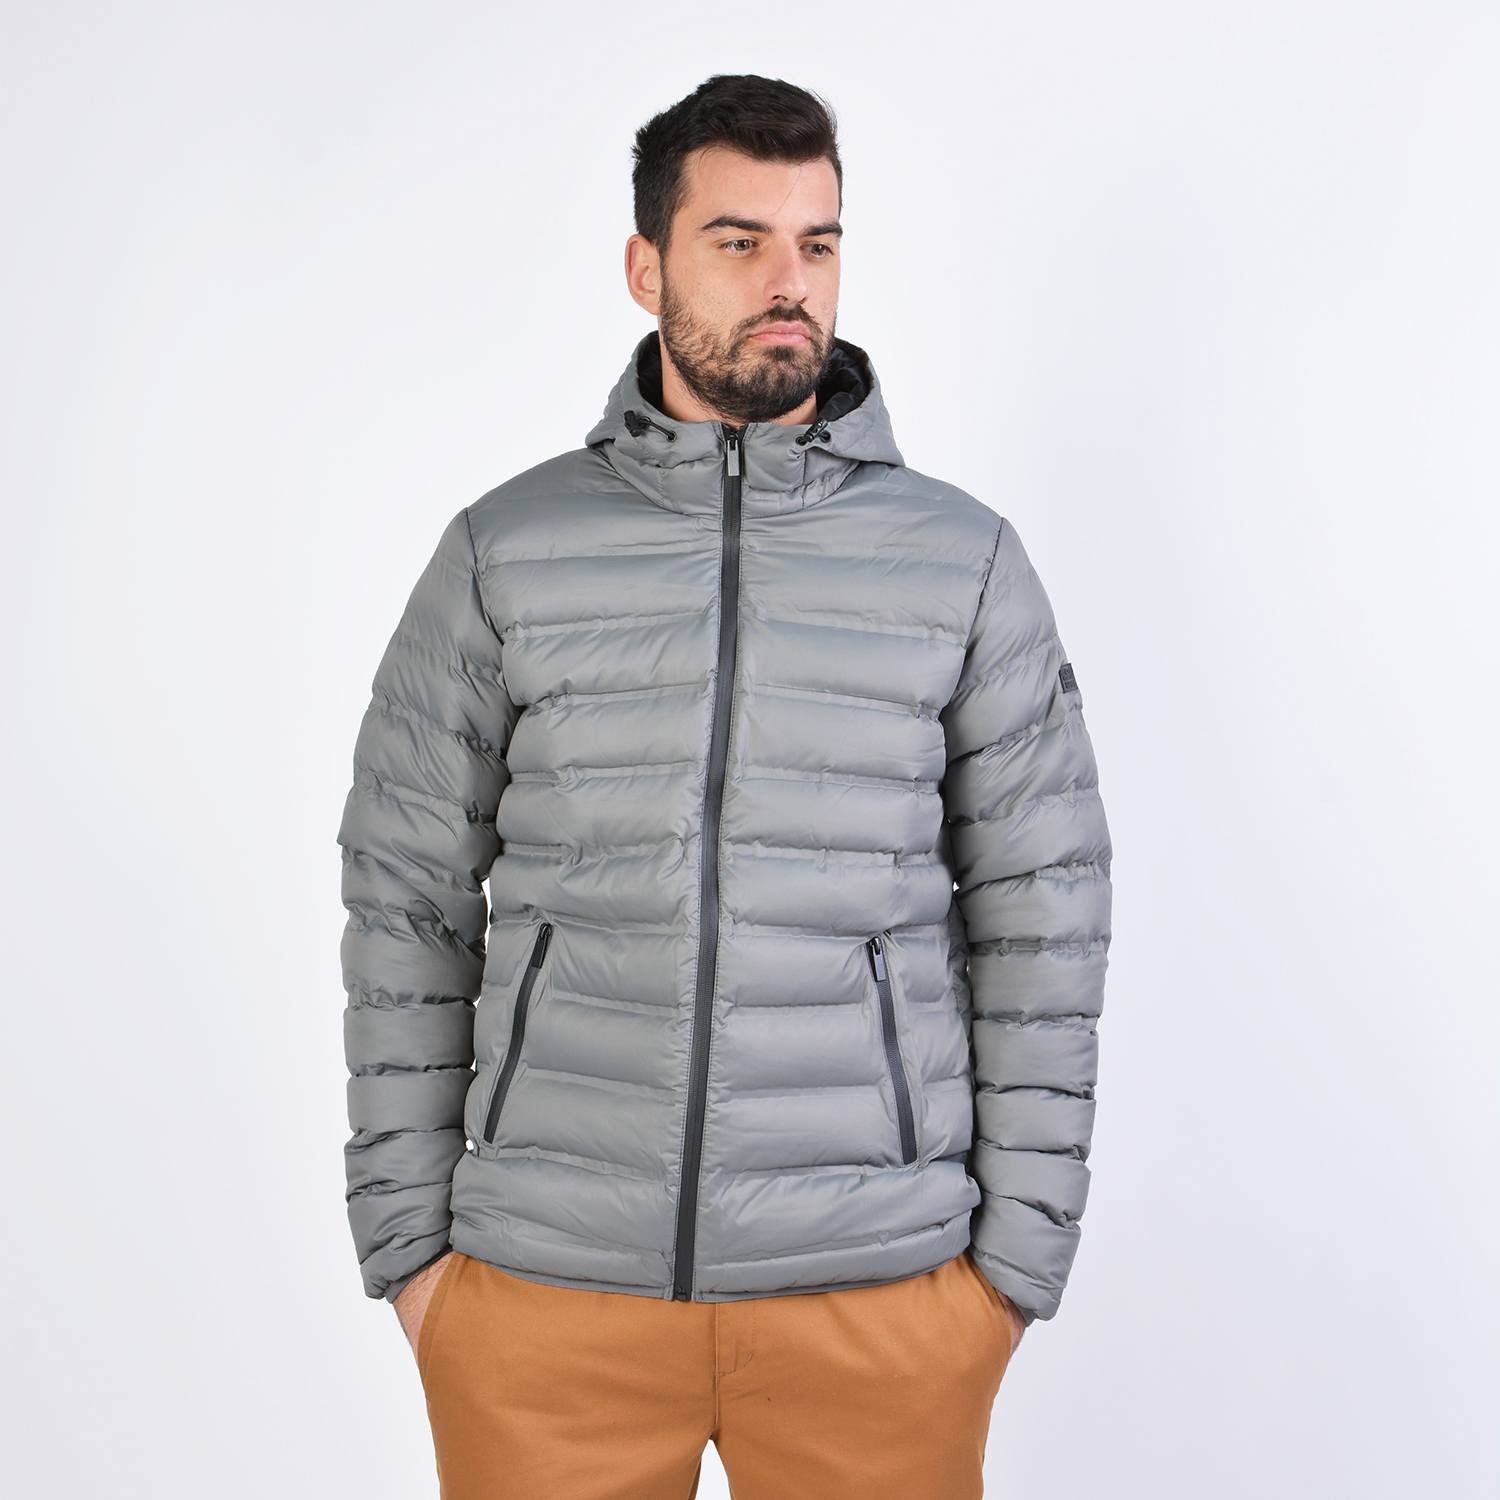 Body Action Quilt Padded Jacket With Hood (9000041223_1890)